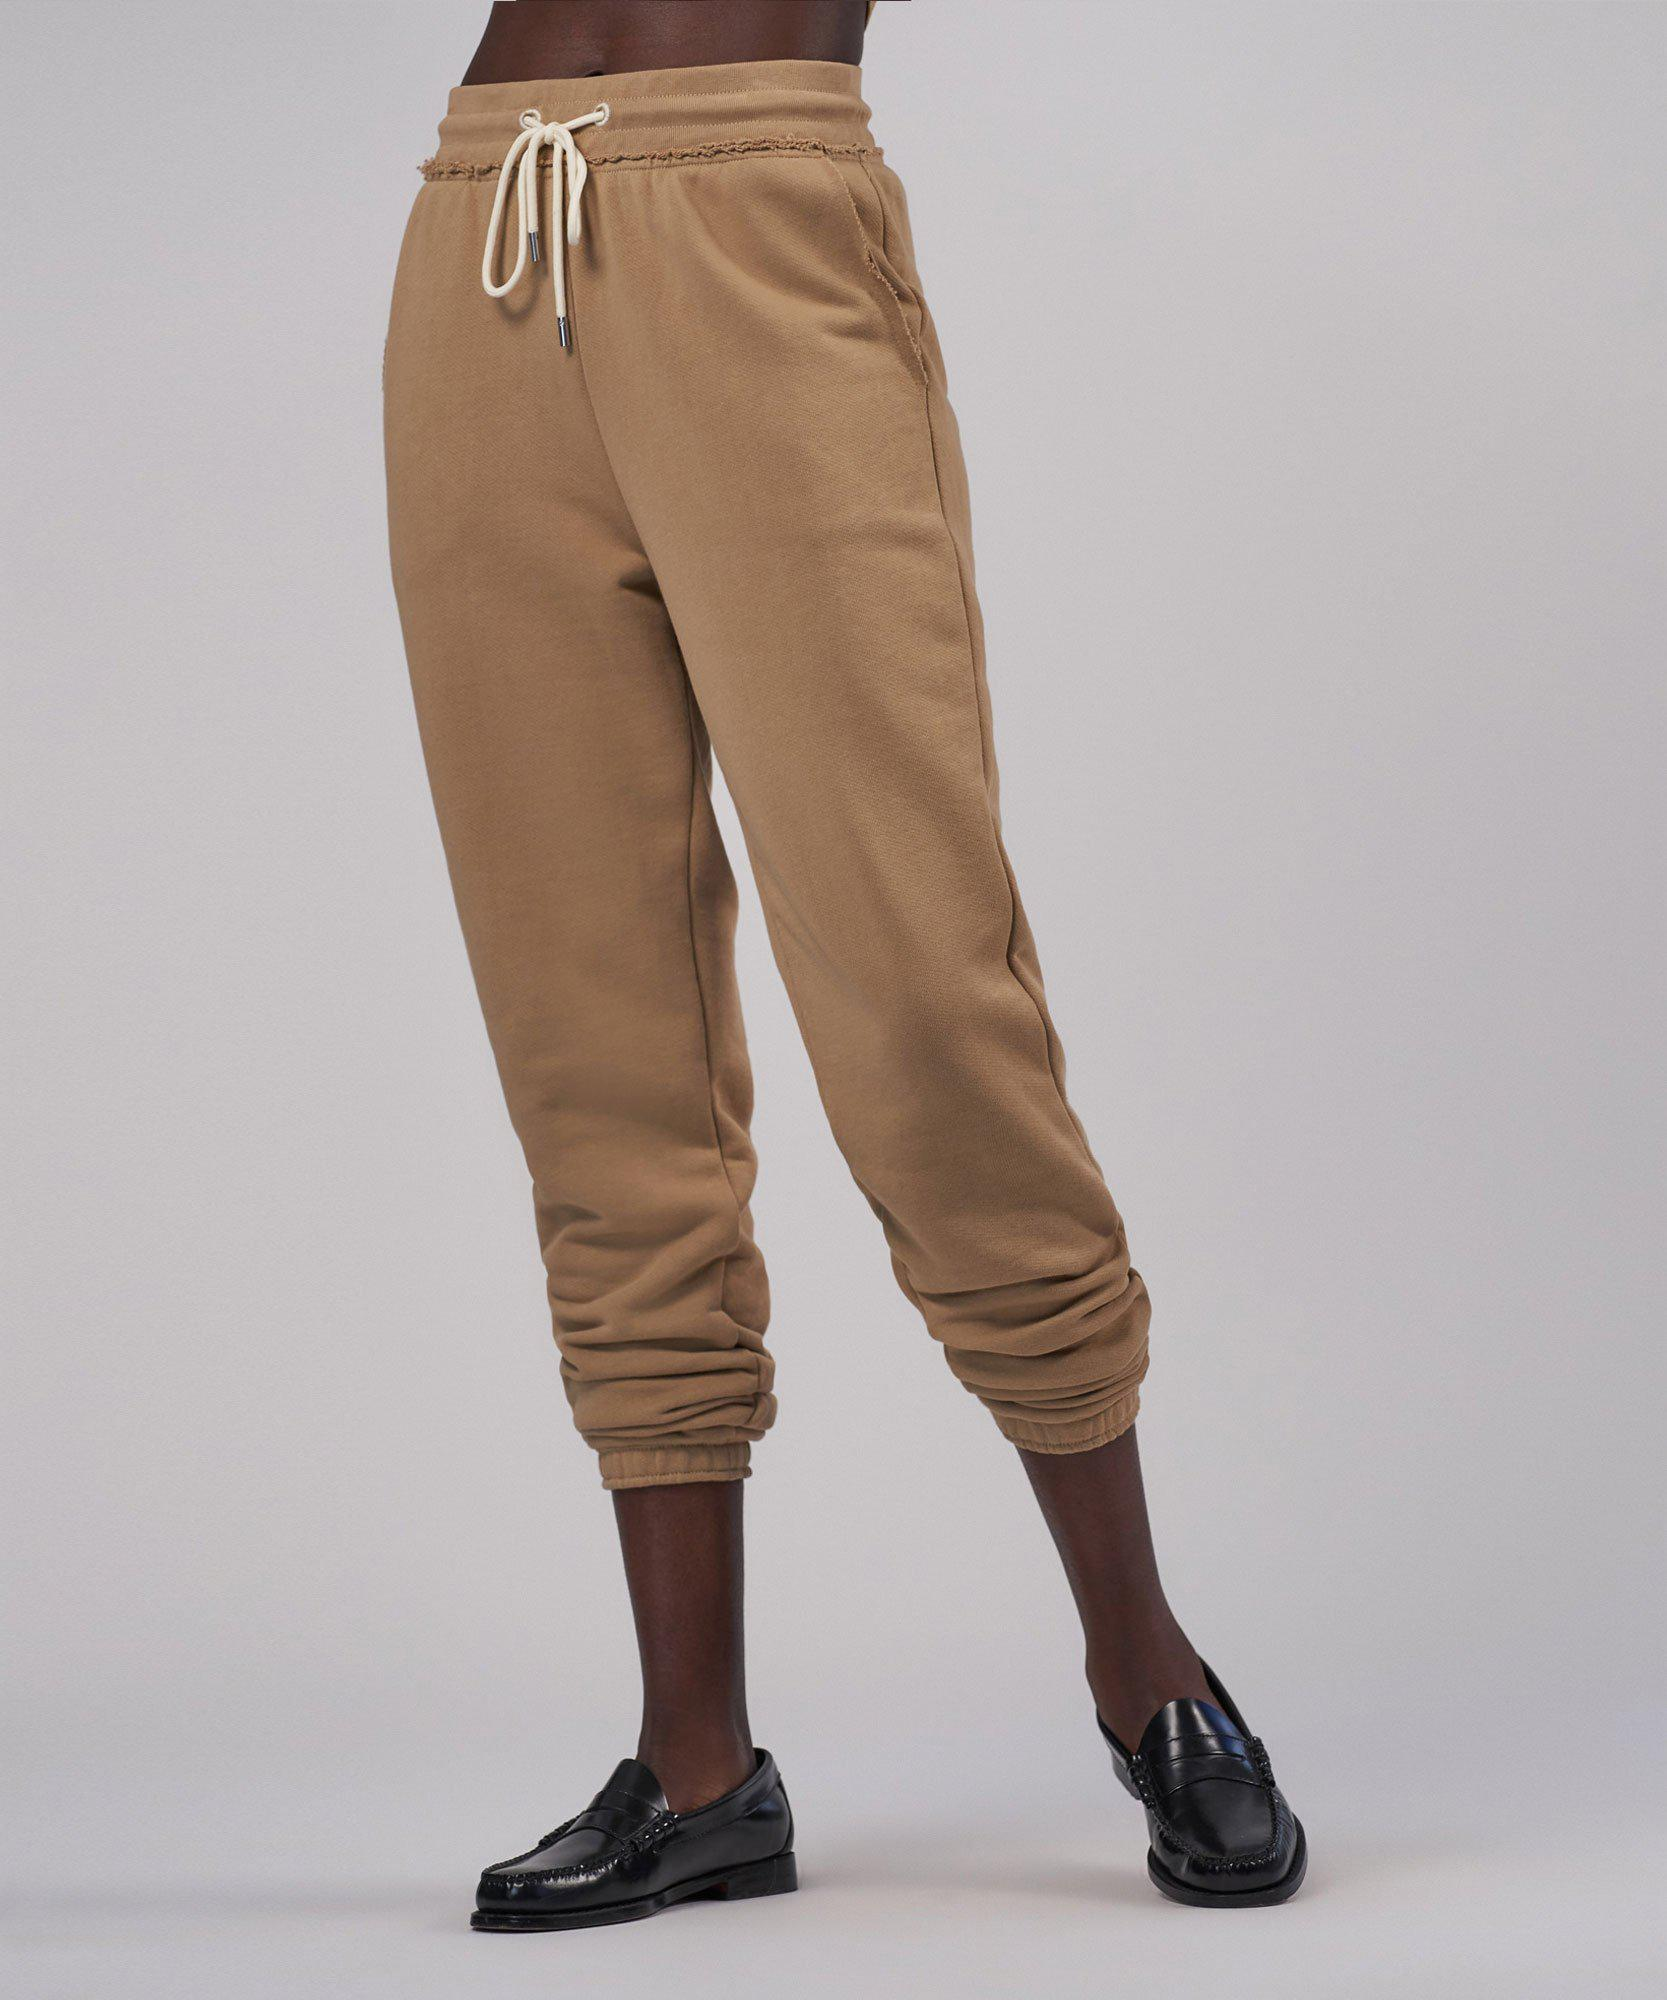 French Terry Pull-On Pant - Dune